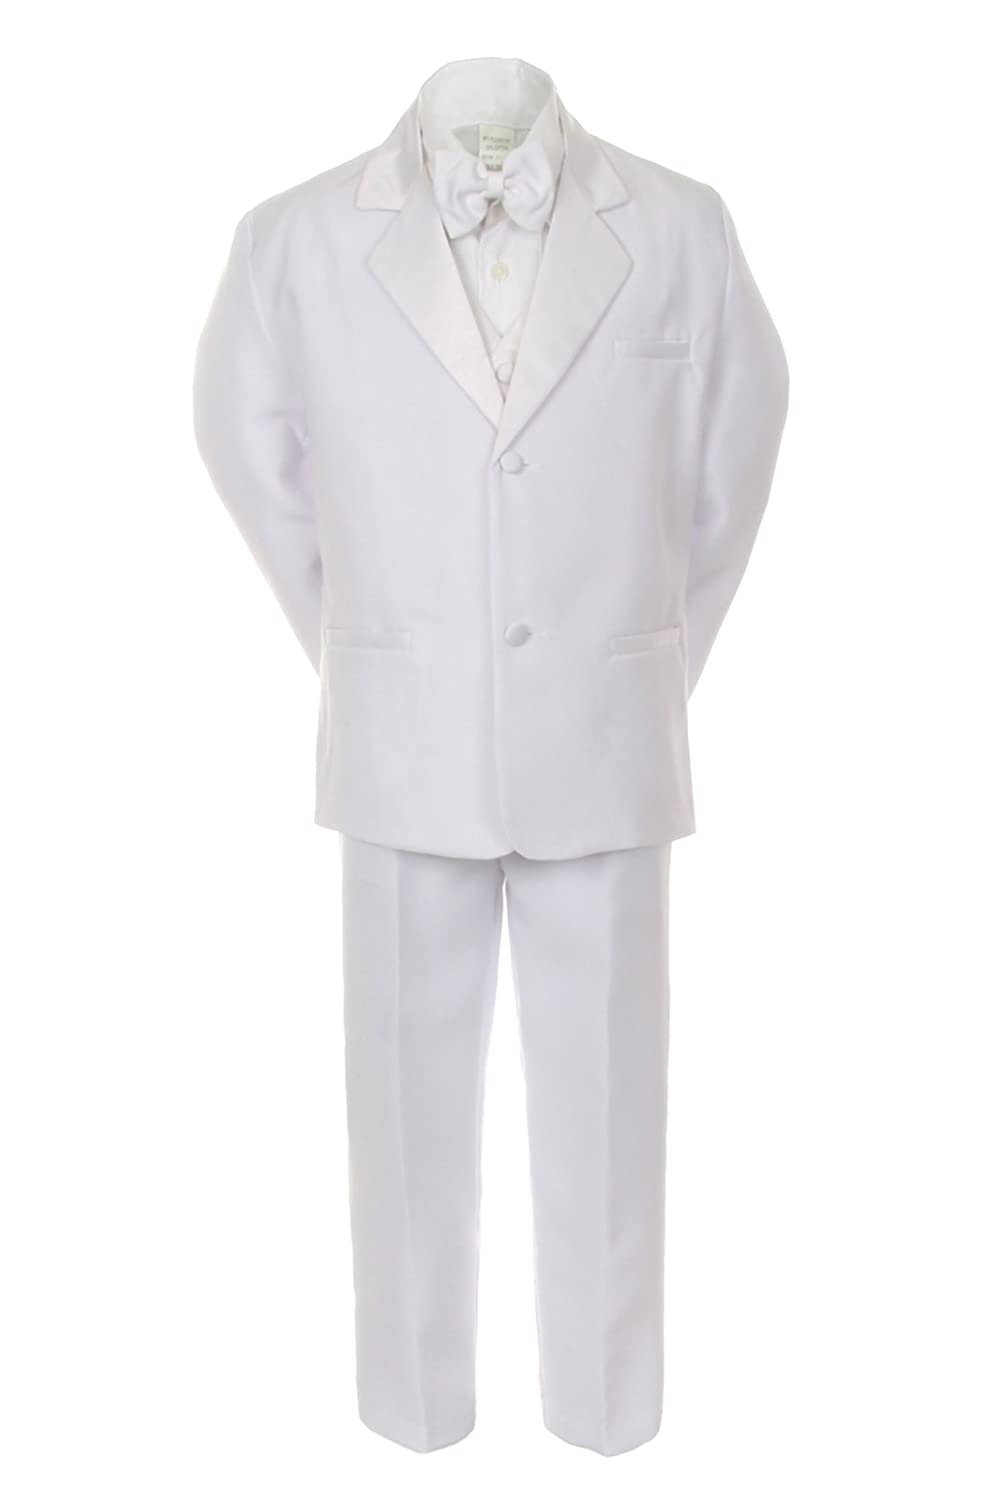 Recital Tuxedo Suit Set White Size 12 Month  to 18 Boys Baptism Ring Bearer